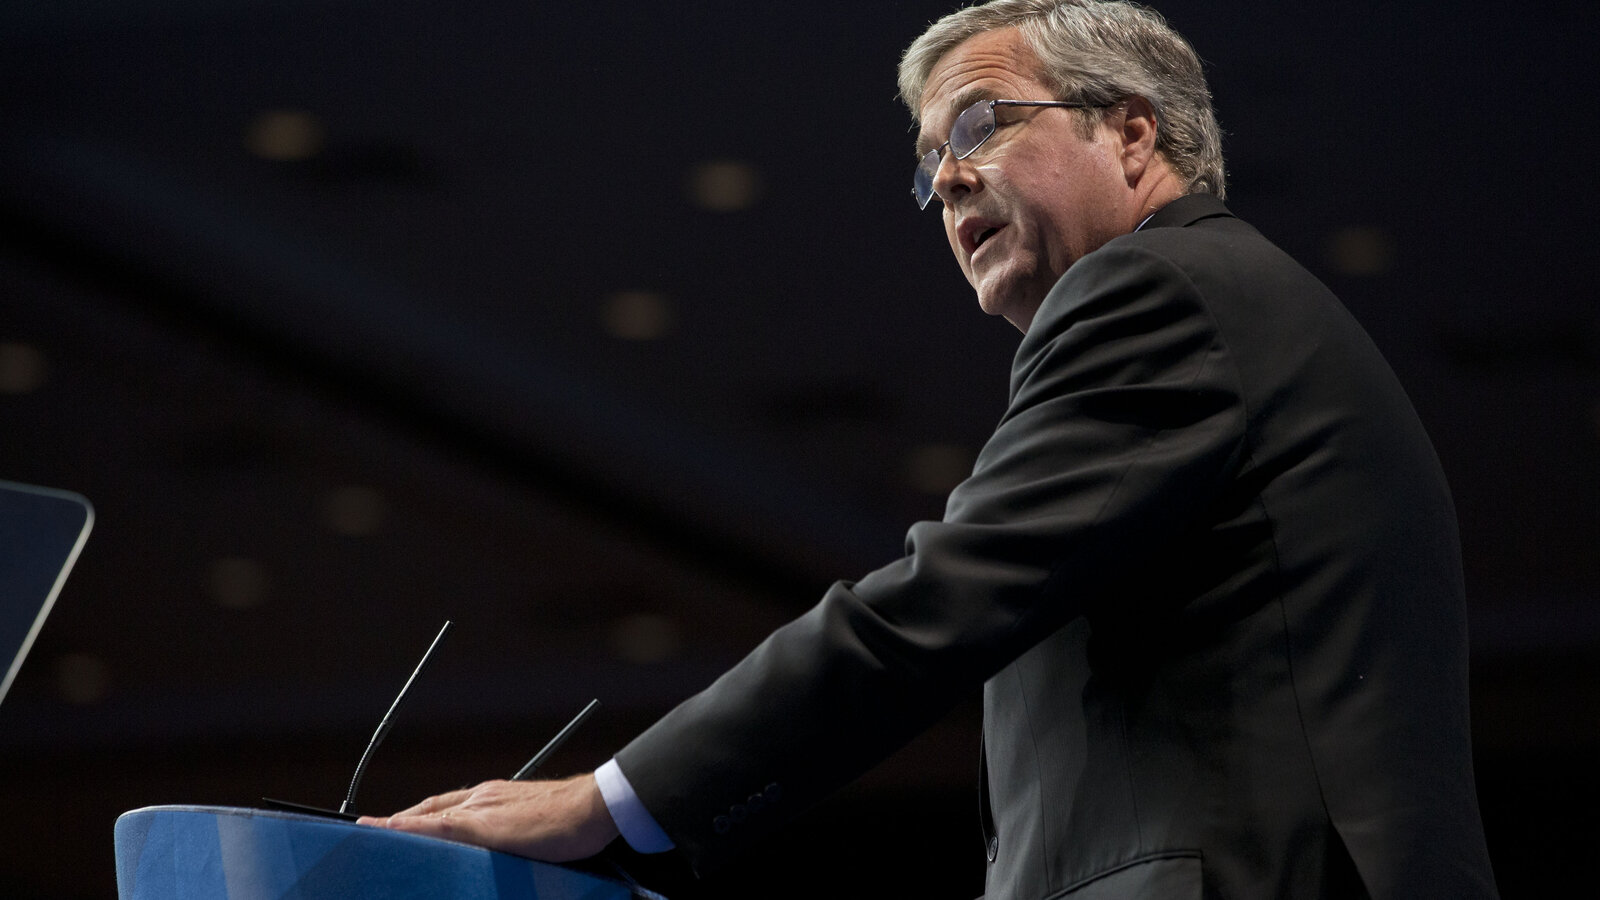 Former Florida Gov. Jeb Bush addresses the audience at his last Conservative Political Action Conference appearance in March 2013. Bush is to appear again Friday, as he considers a potential 2016 presidential campaign.